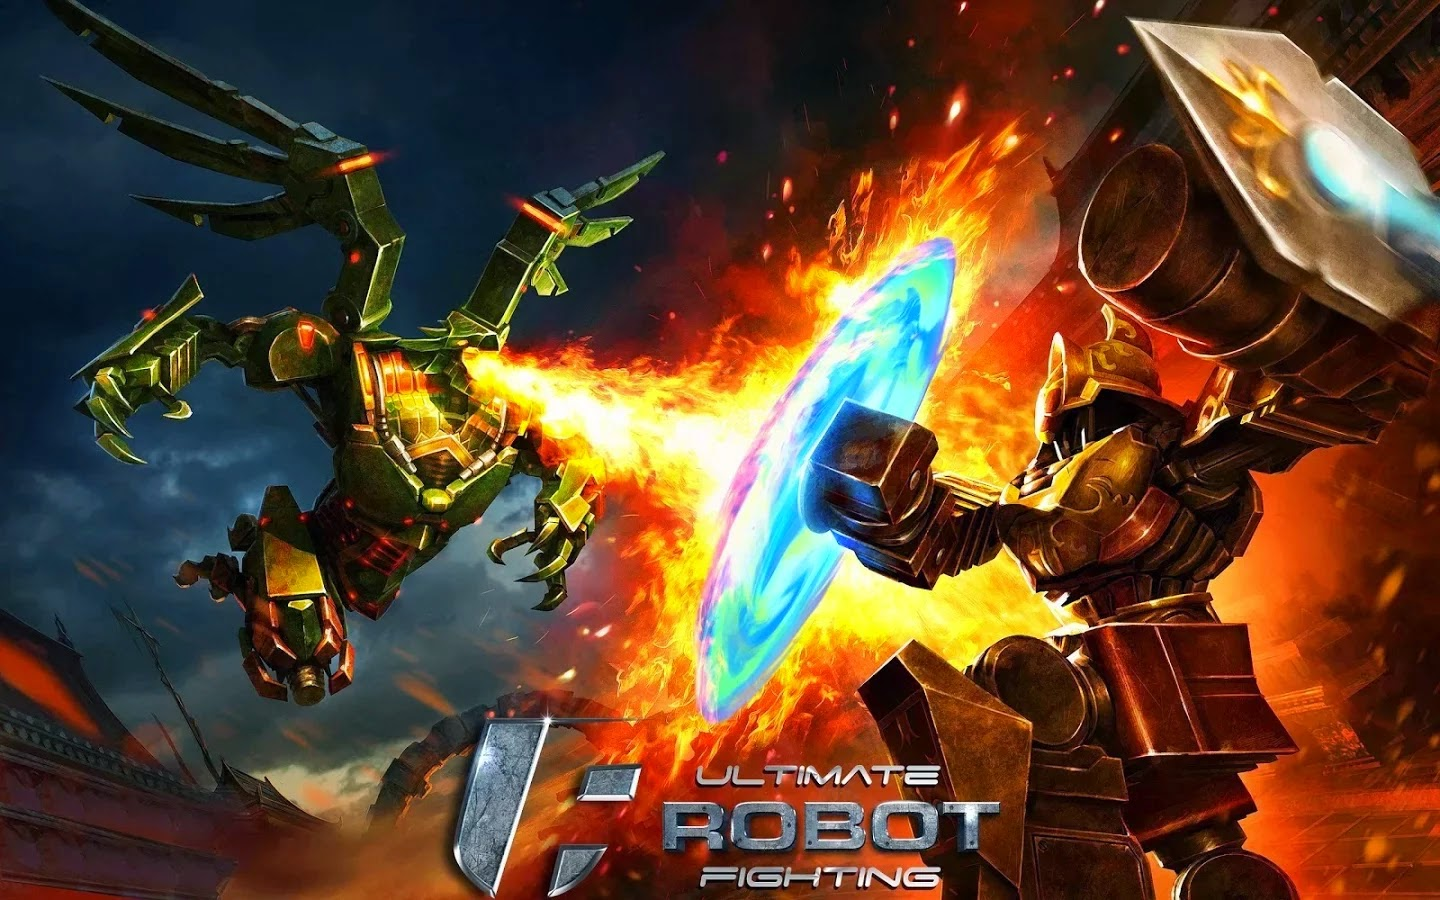 Ultimate Robot Fighting v0.0.73 APK Mod